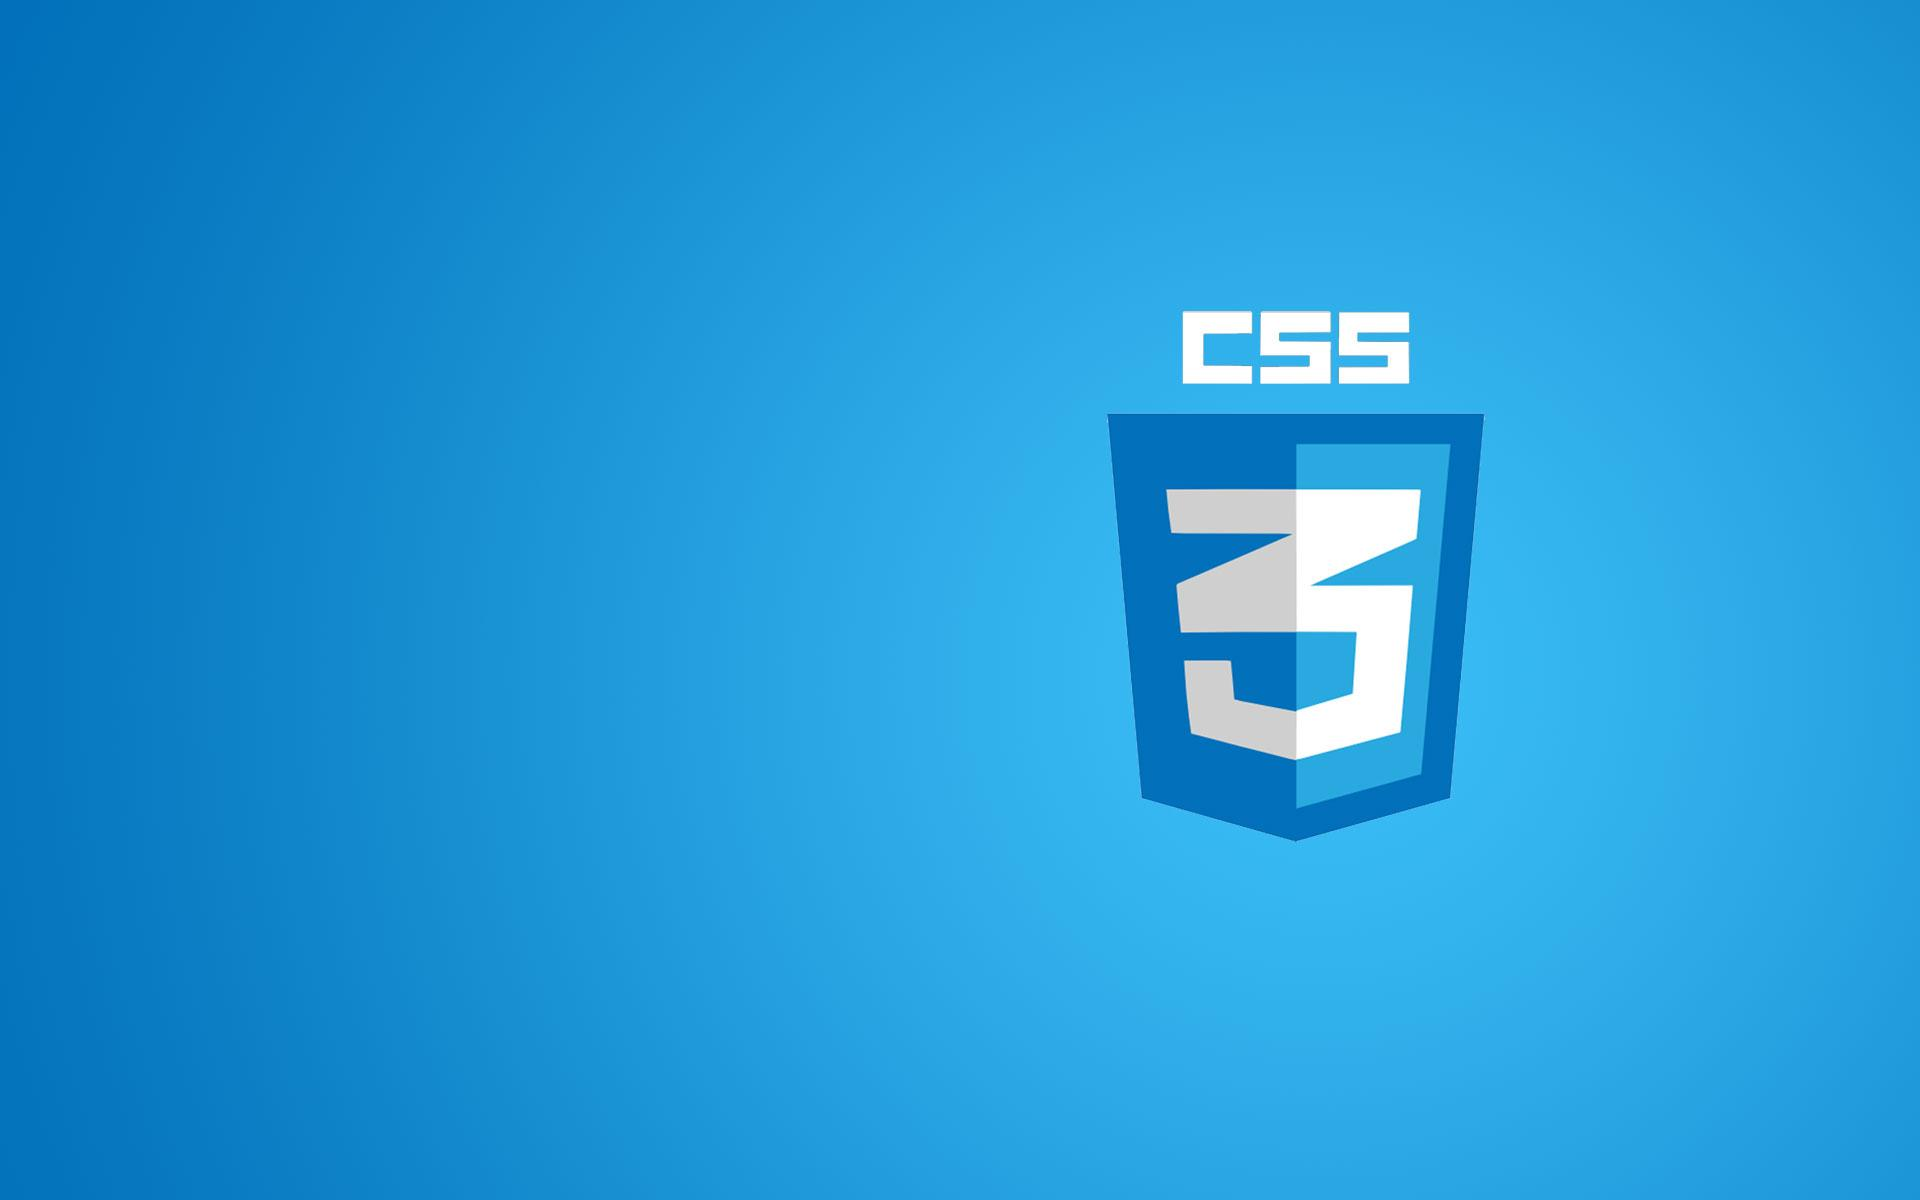 Css Wallpapers Hd Wallpaper Cave